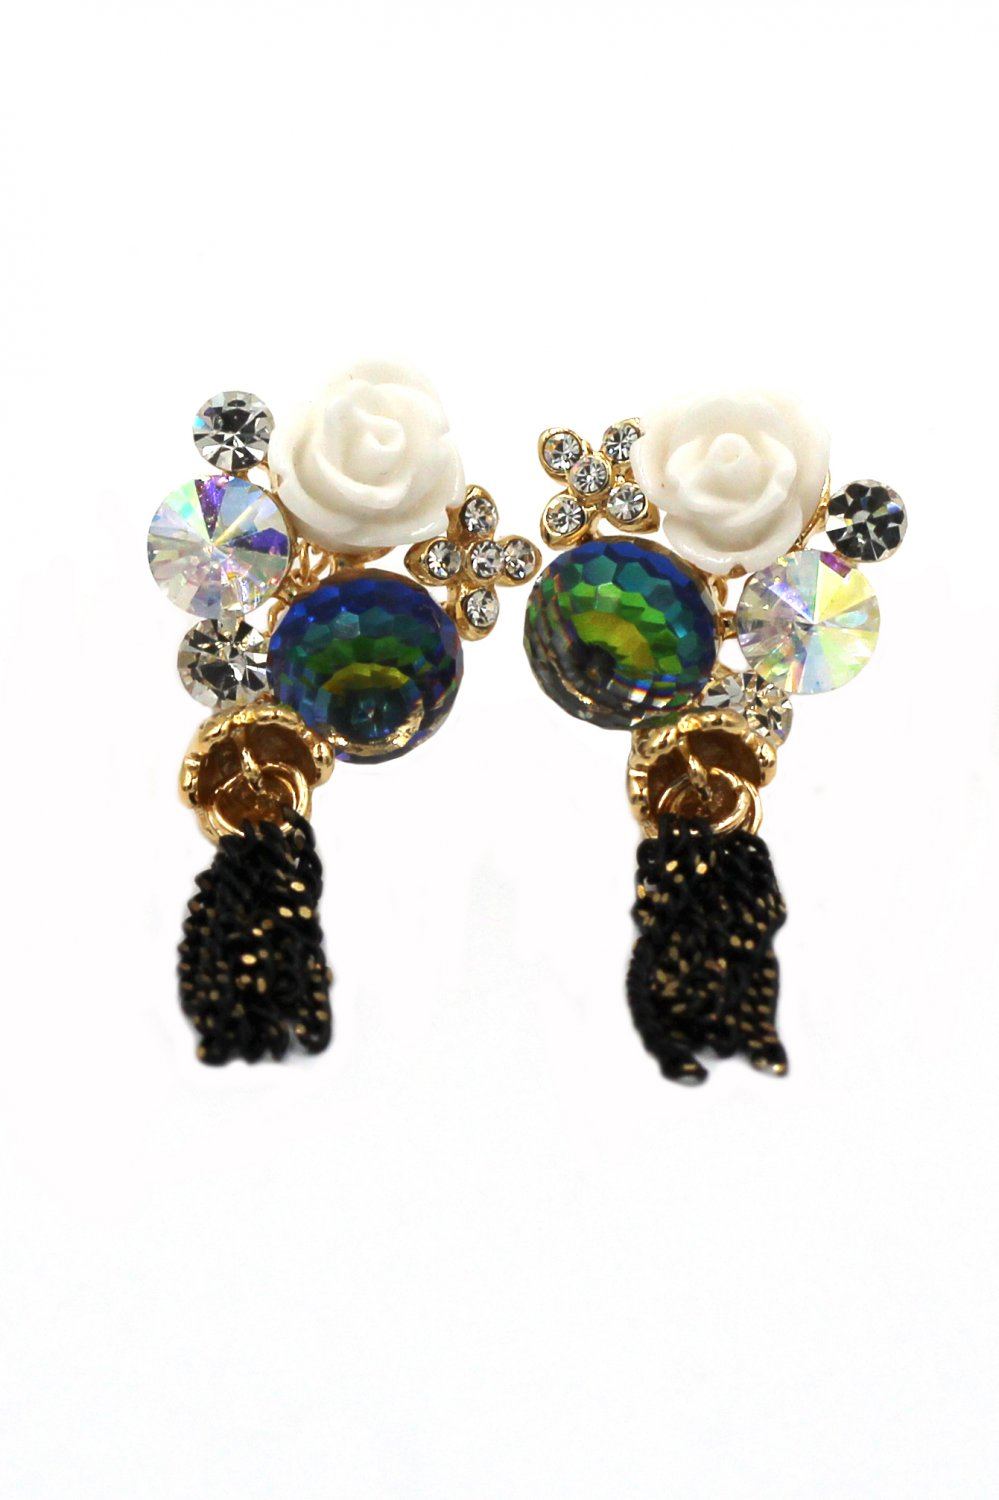 Lovely white flower crystal earrings